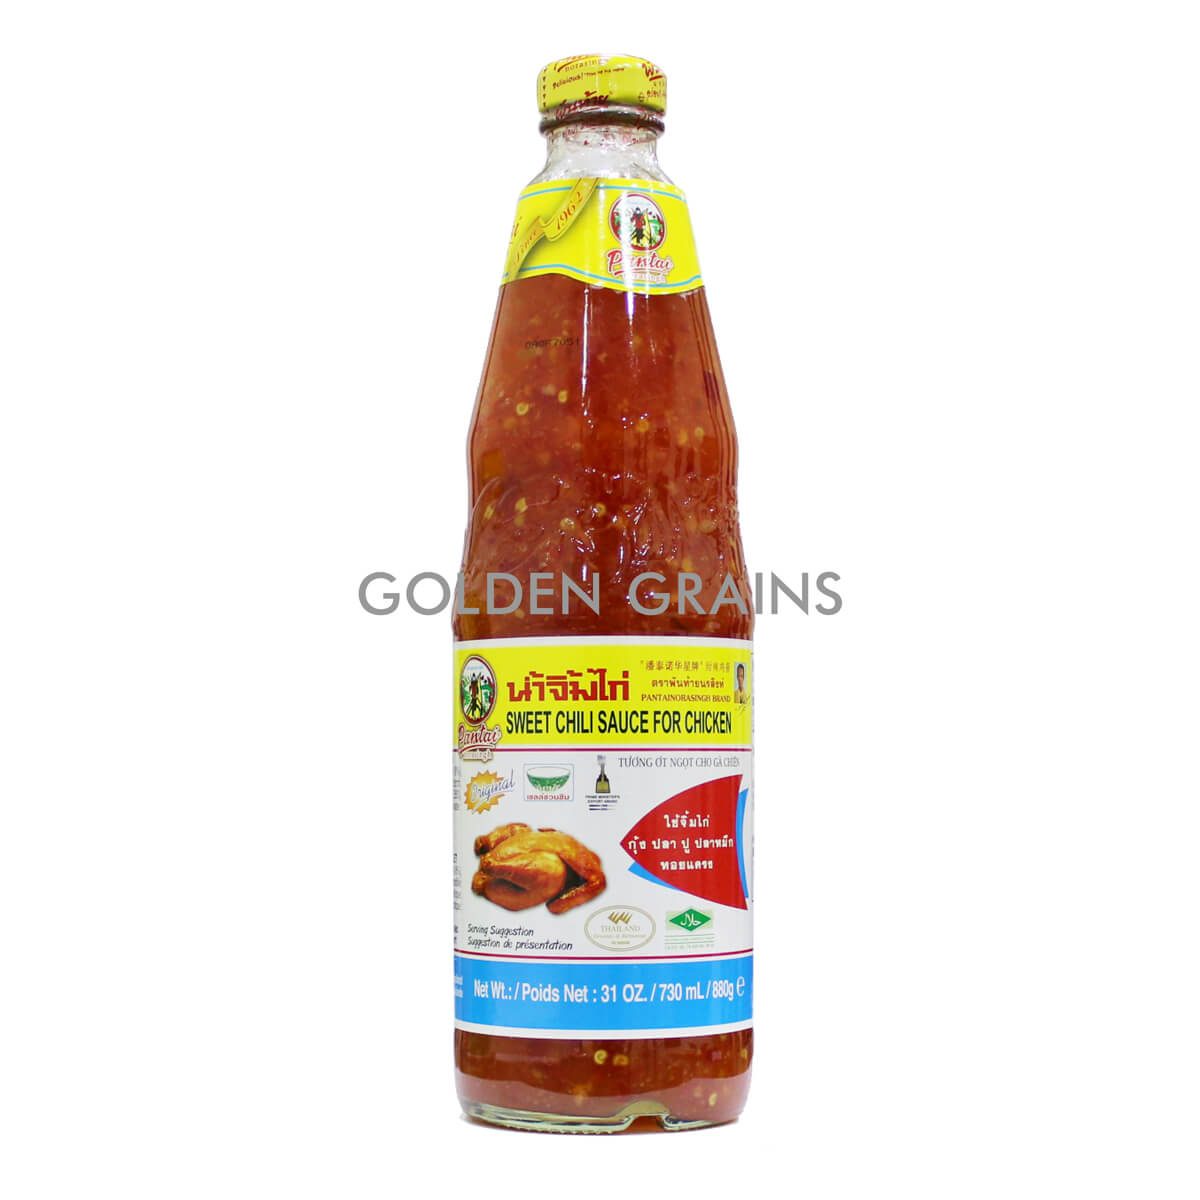 Golden Grains Pantai - Sweet Chili Sauce Bottle - Front.jpg